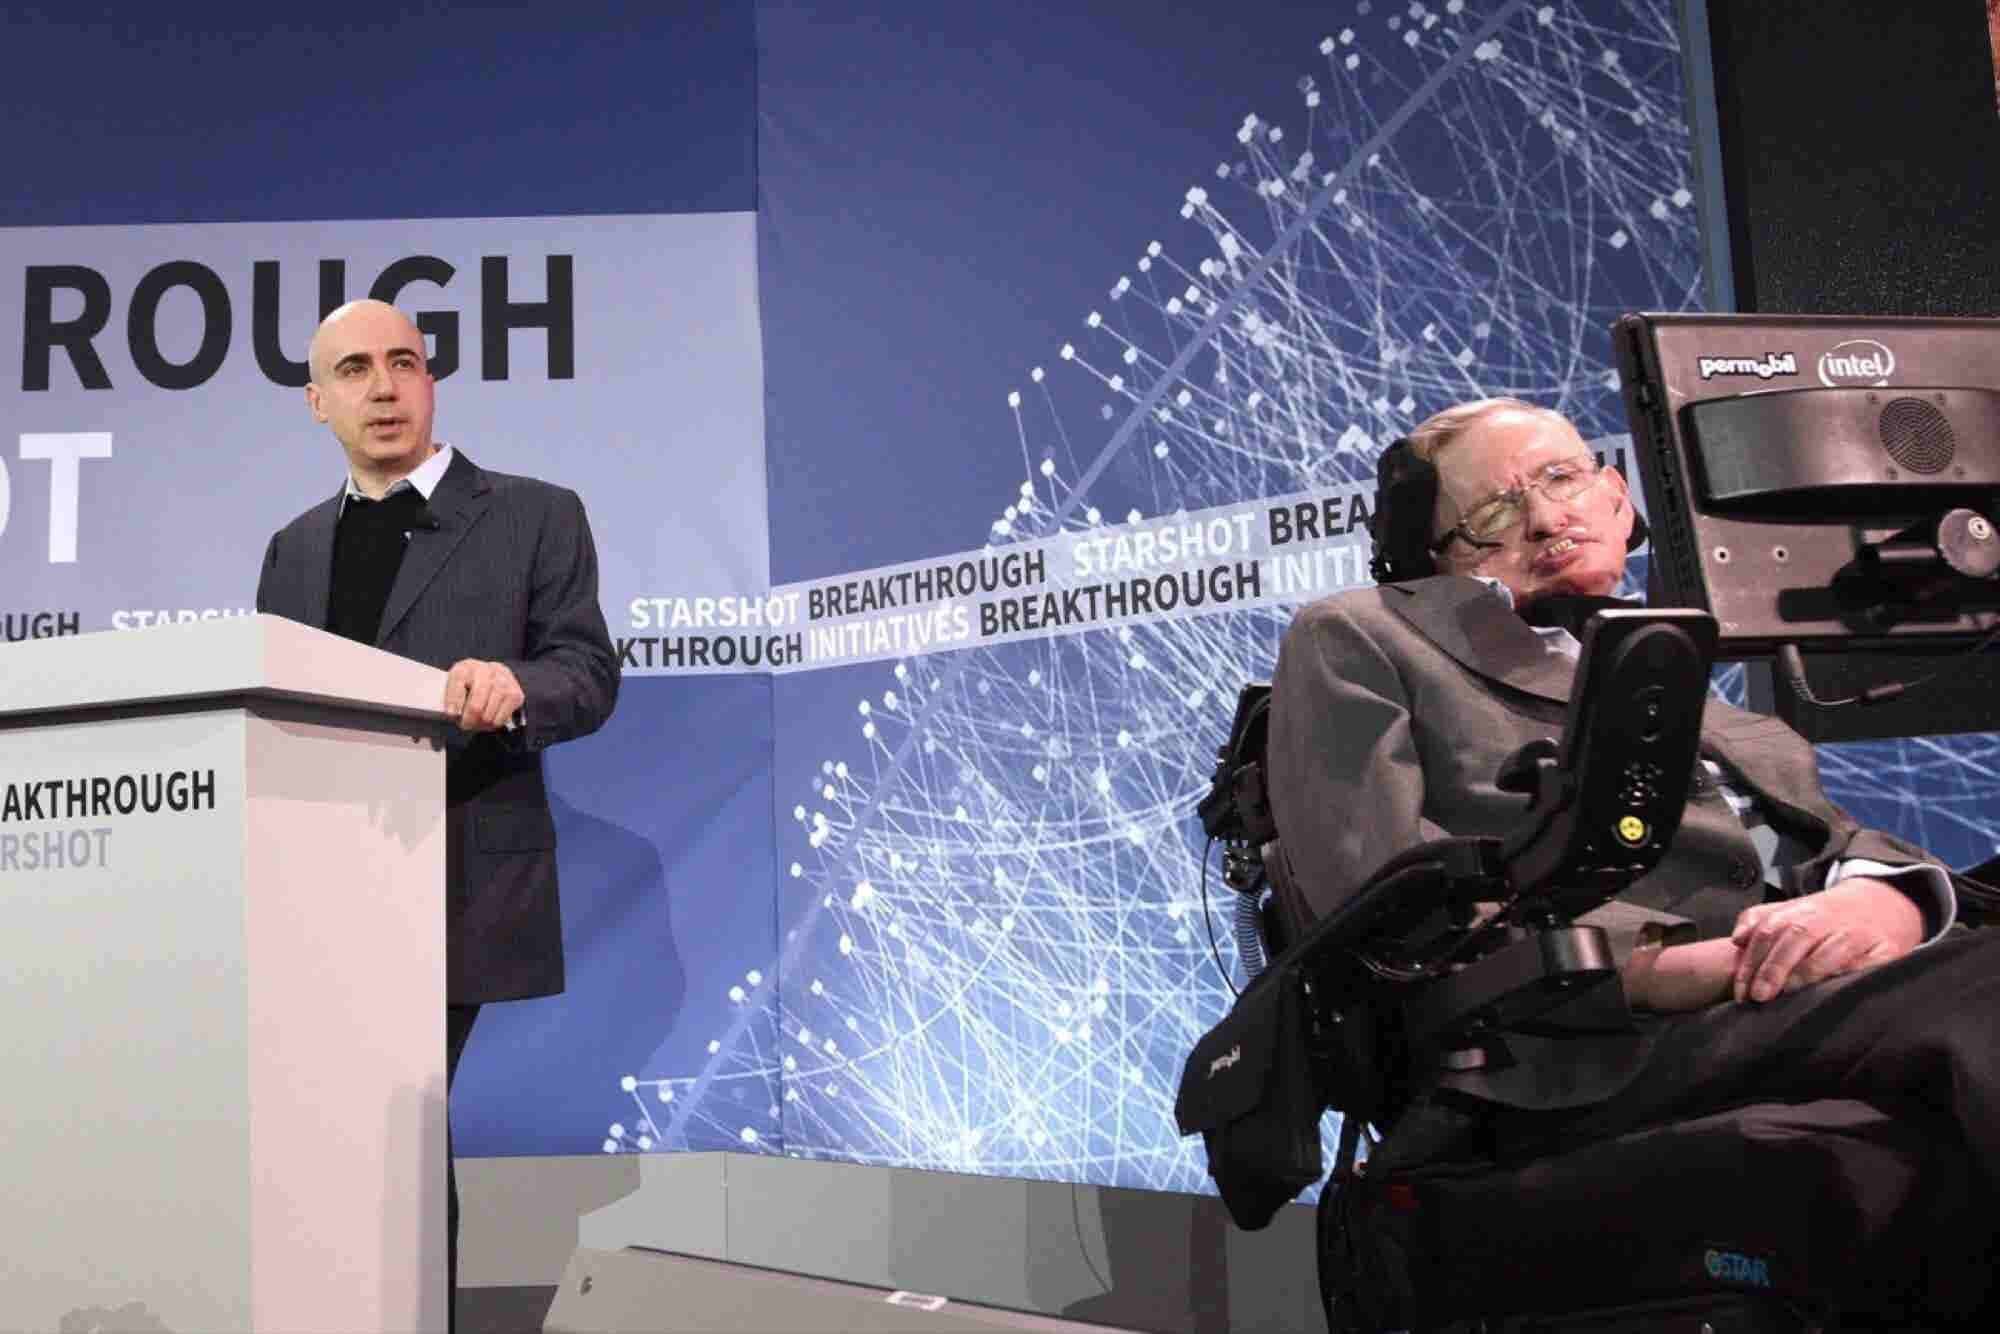 Stephen Hawking Teams With Billionaire Yuri Milner to Find an Earth-Like Planet